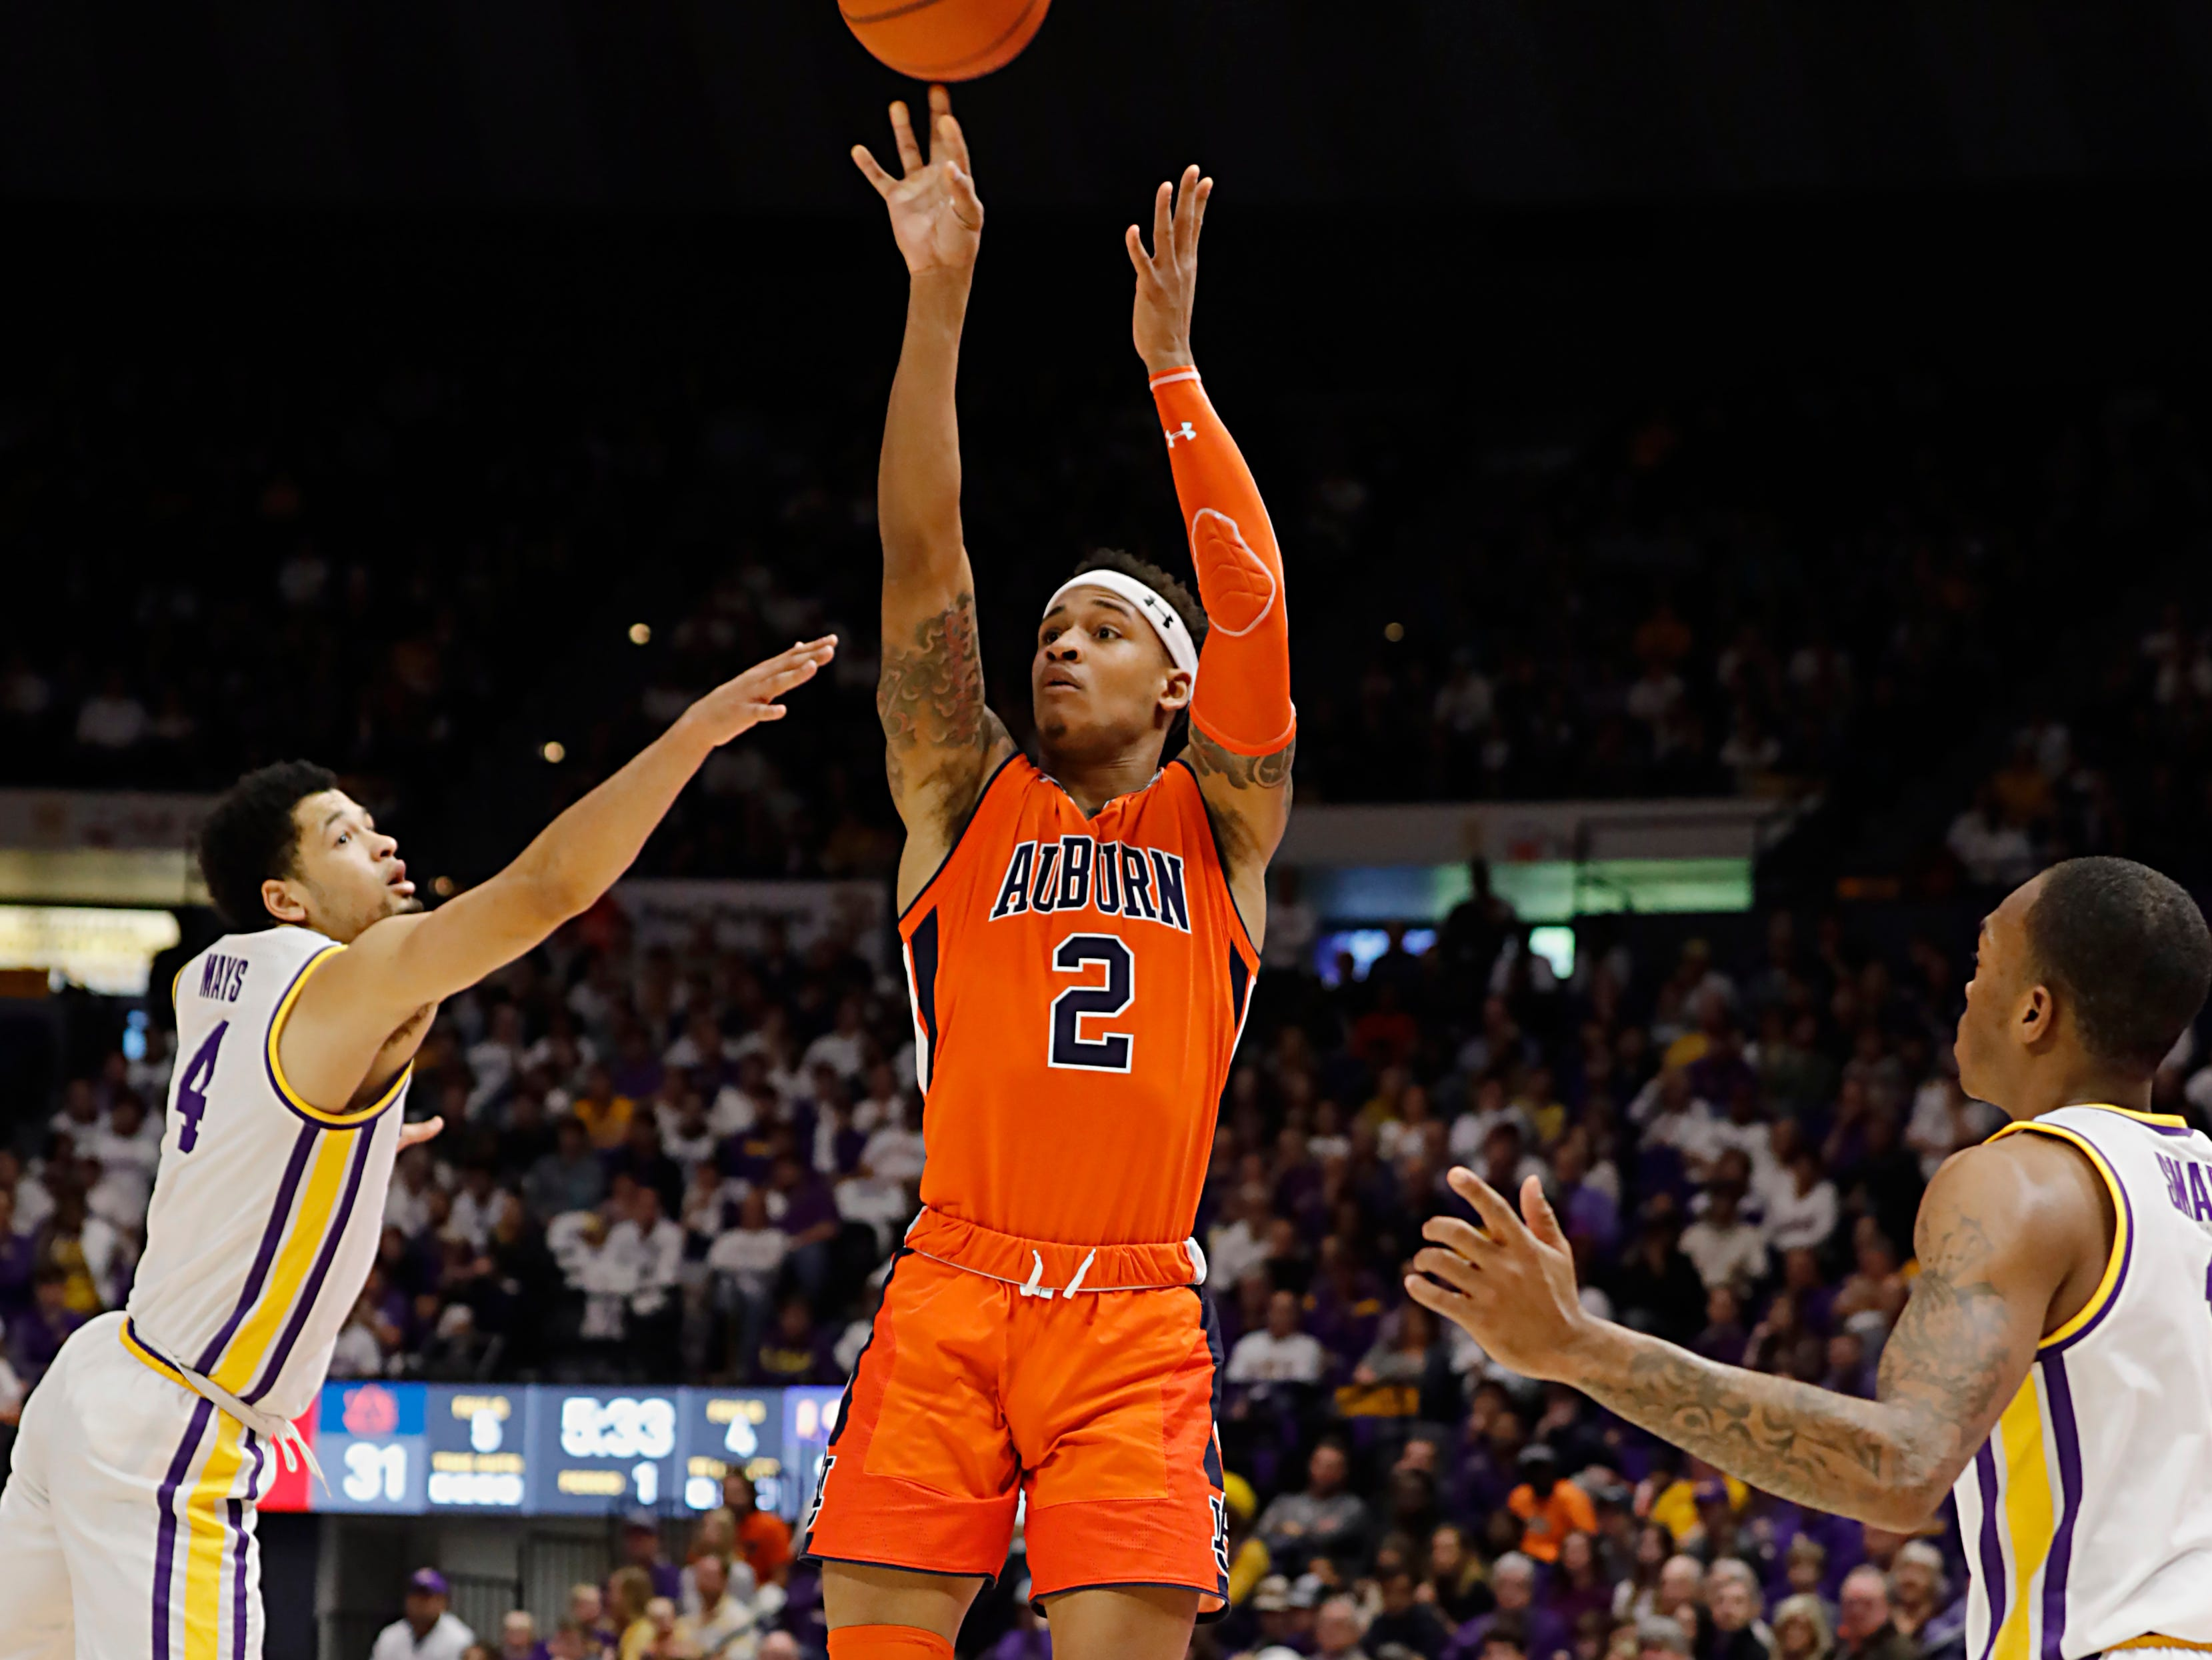 Feb 9, 2019; Baton Rouge, LA, USA; Auburn Tigers guard Bryce Brown (2) shoots a jump shot against LSU Tigers in the first half at Maravich Assembly Center. Mandatory Credit: Stephen Lew-USA TODAY Sports